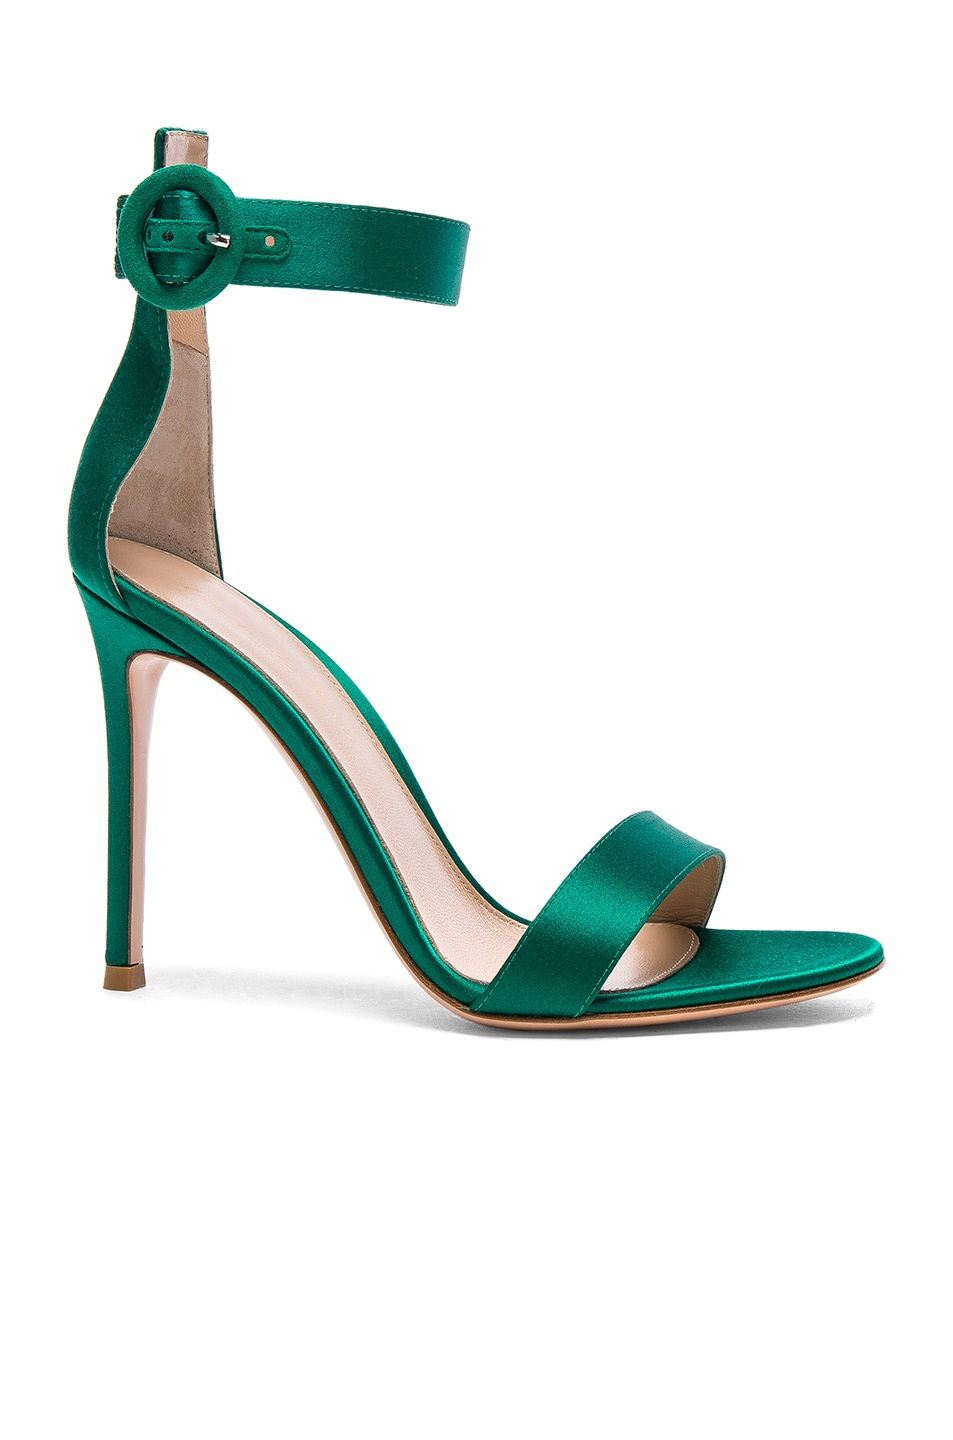 Image 1 of Gianvito Rossi Satin Portofino Heels in Emerald